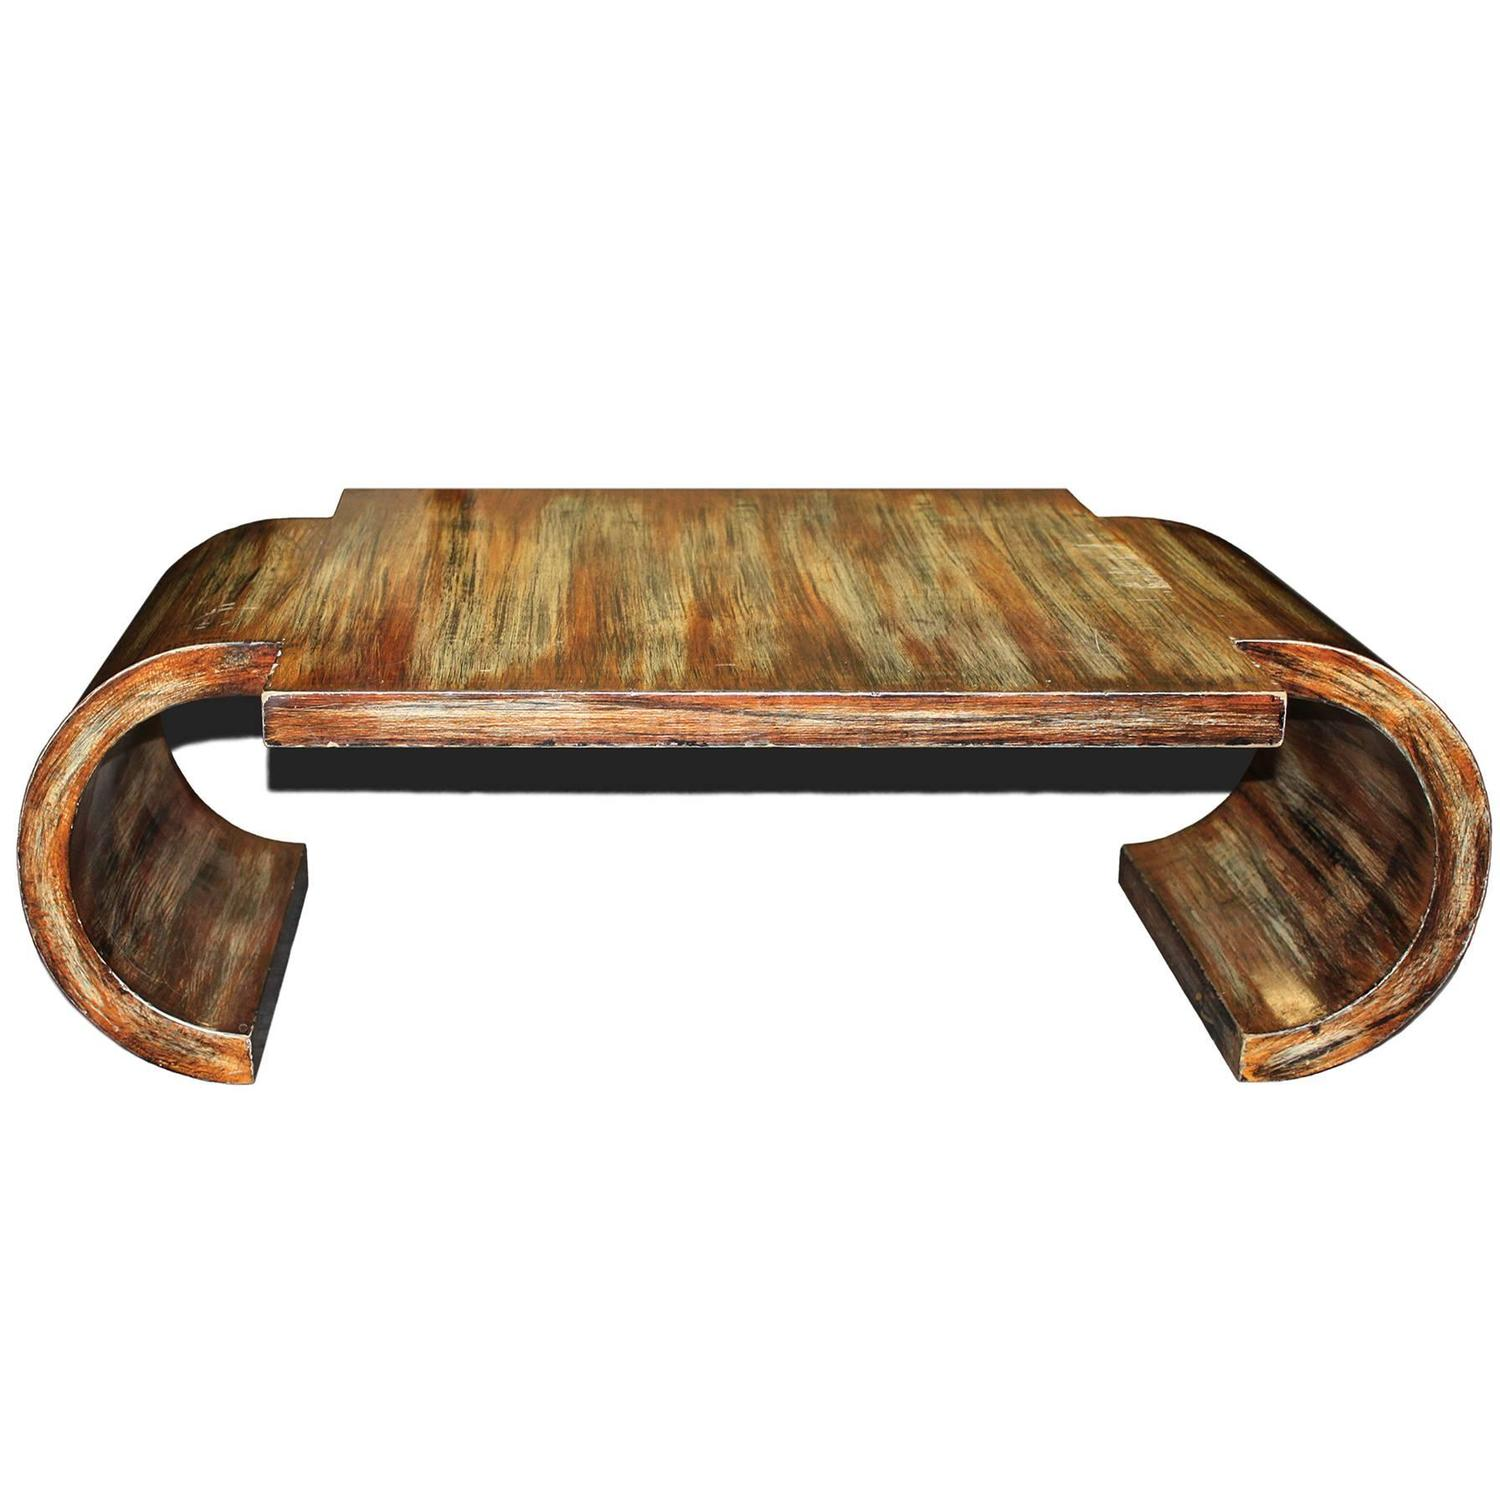 james mont 20th century scroll coffee table with